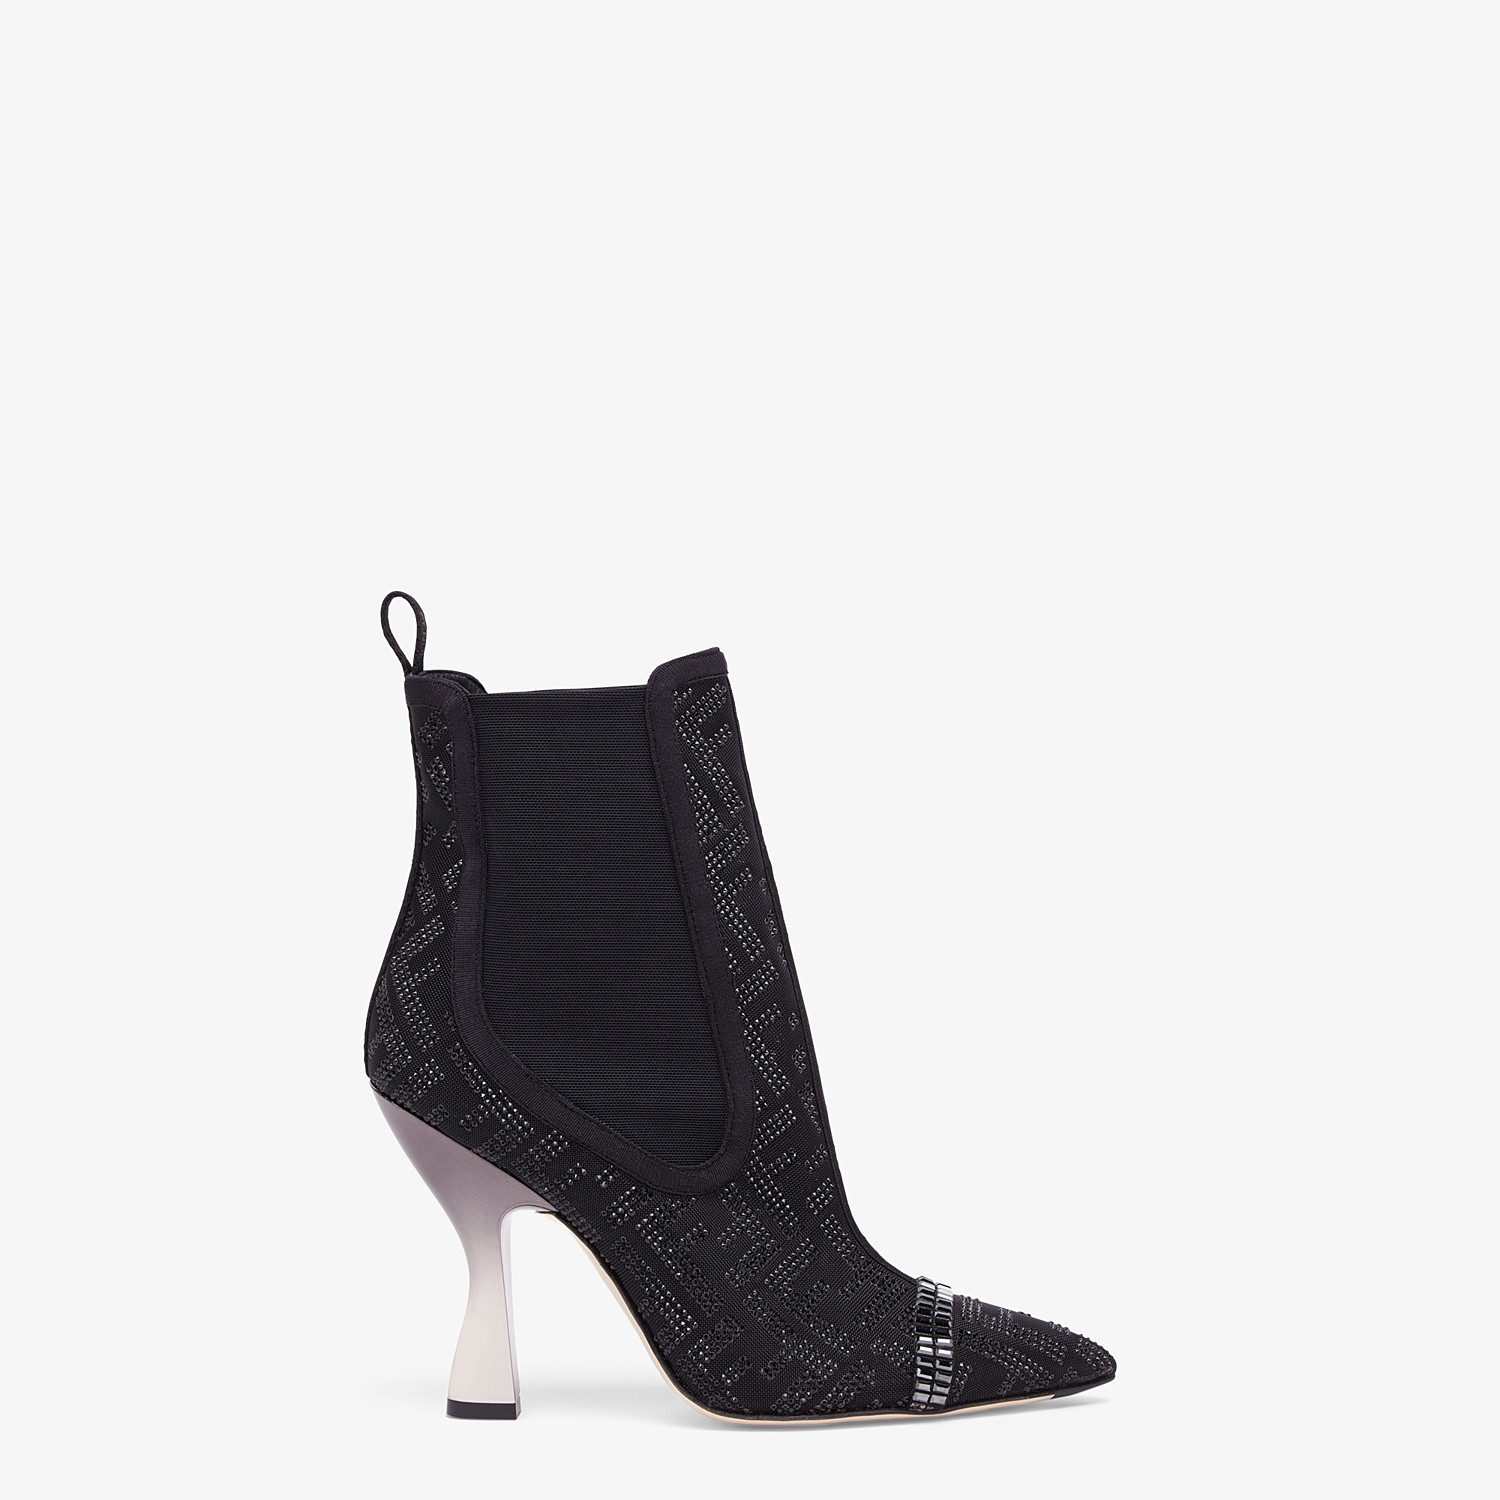 FENDI ANKLE BOOTS - Colibrì in black mesh - view 1 detail